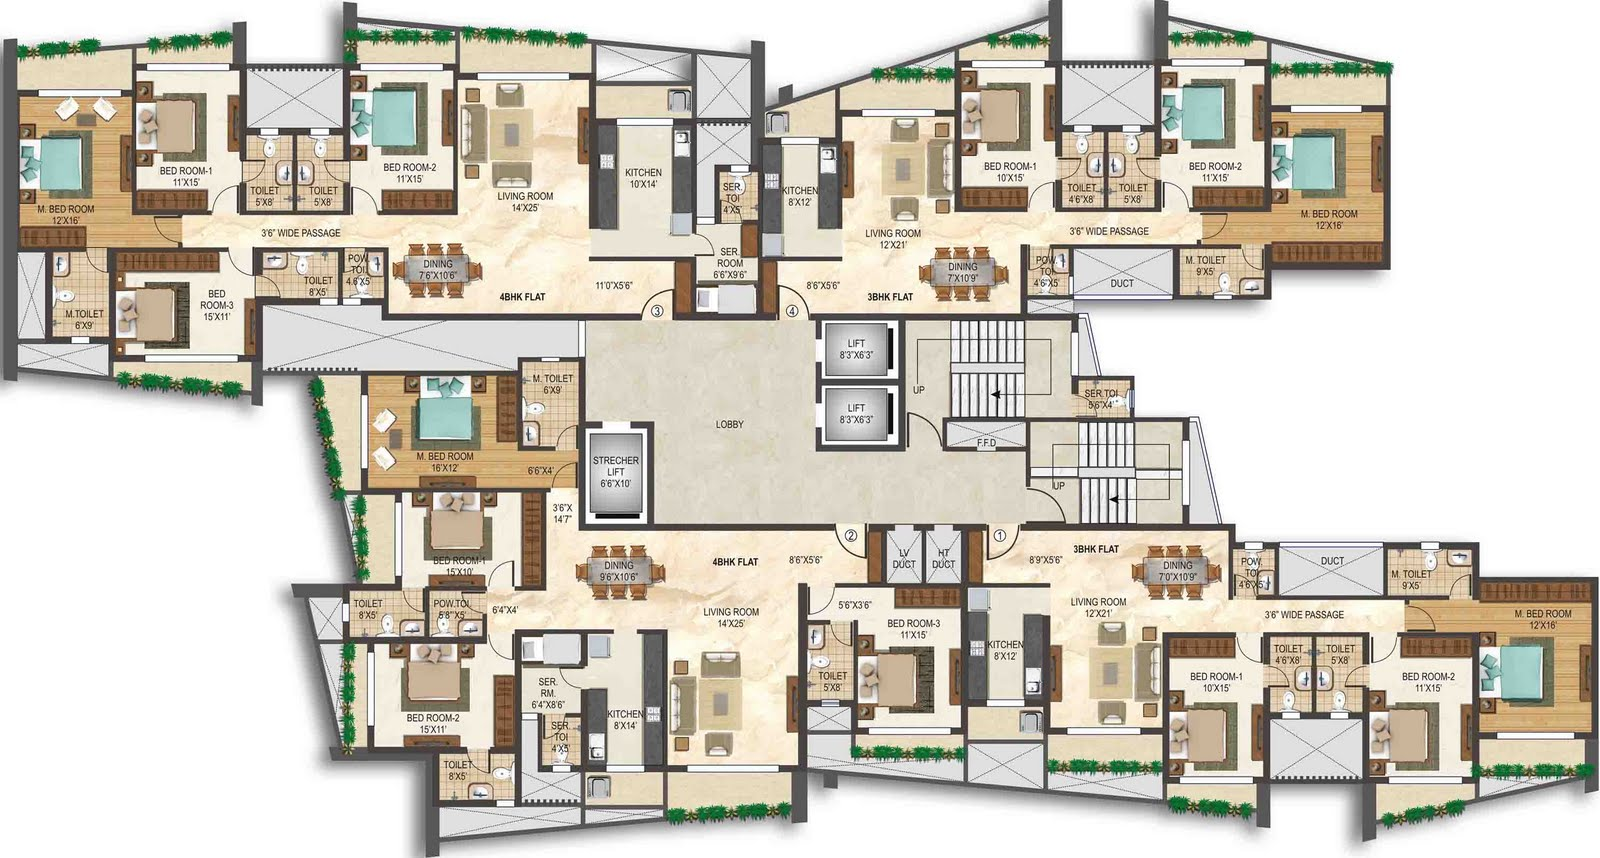 Free booking 3 4 bhk apartment oriana gandhi nagar for Backyard apartment floor plans